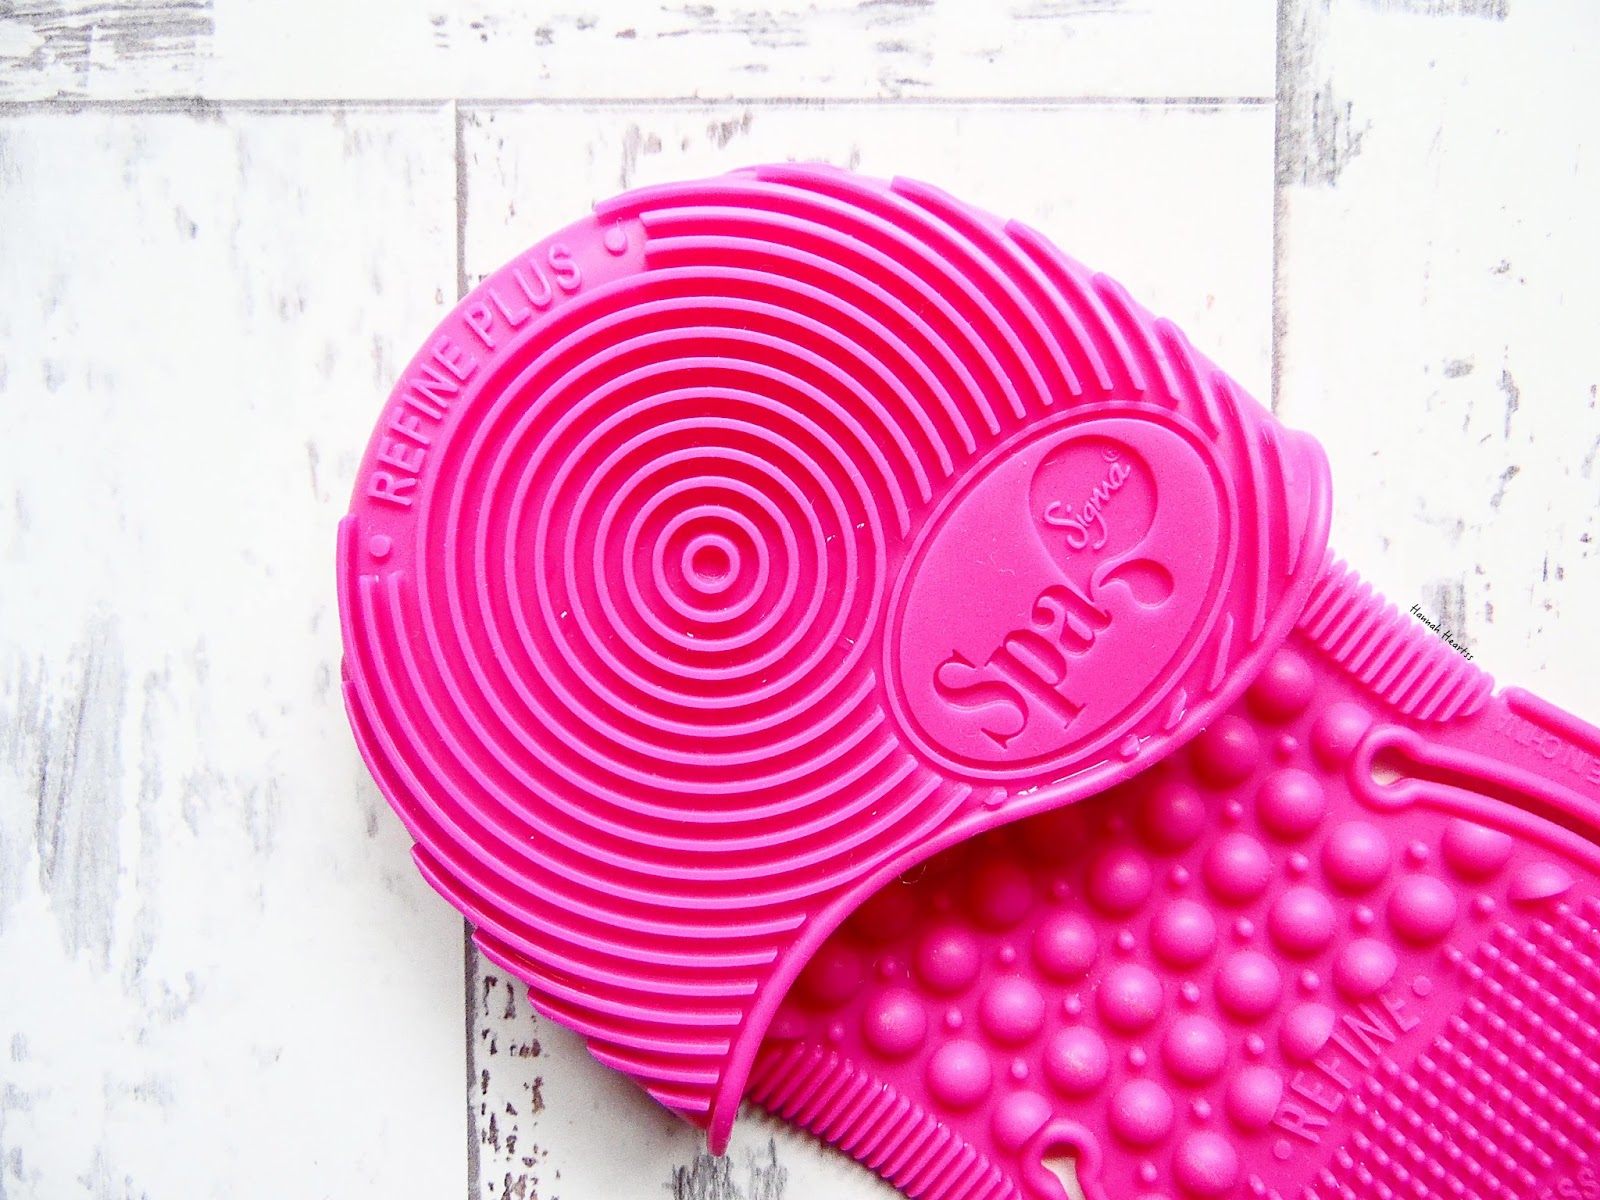 Sigma Spa Express Brush Cleaning Glove